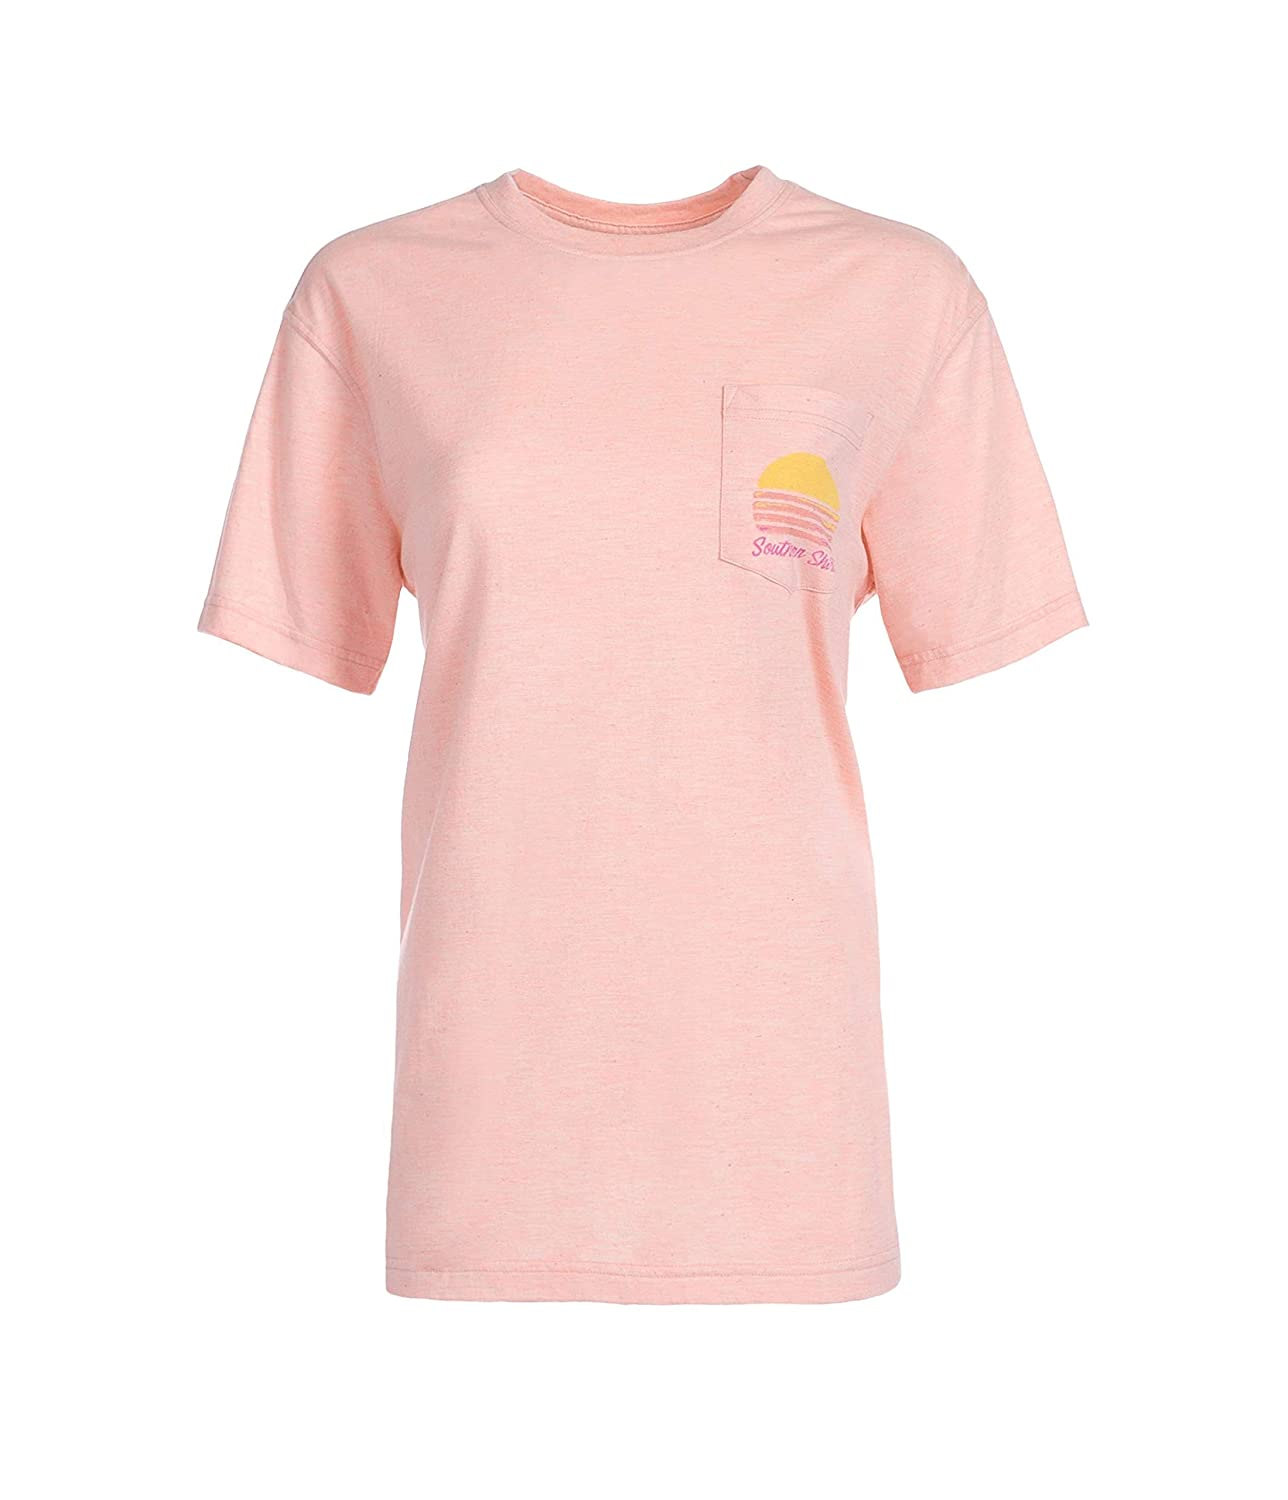 96aee1c1cde3 Southern Shirt Company Here Comes The Sun Short Sleeve T-Shirt at Amazon  Women s Clothing store